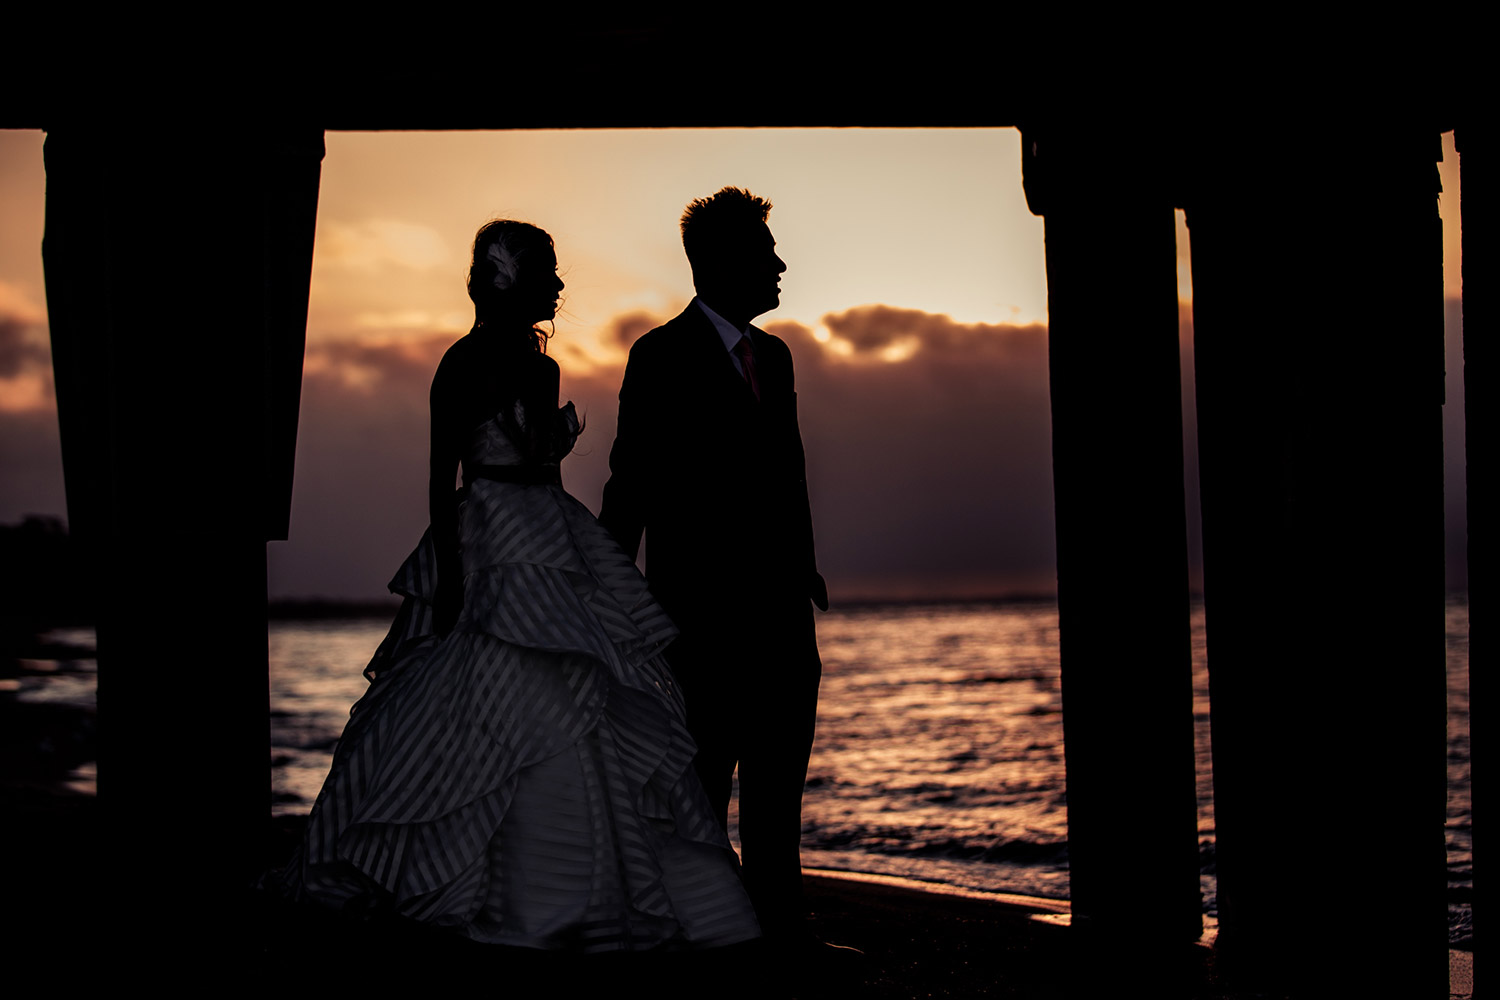 sunshine-coast-wedding-photographer-all-the-love-in-the-world-noosa-mooloolaba-glasshouse-brisbane-001.jpg